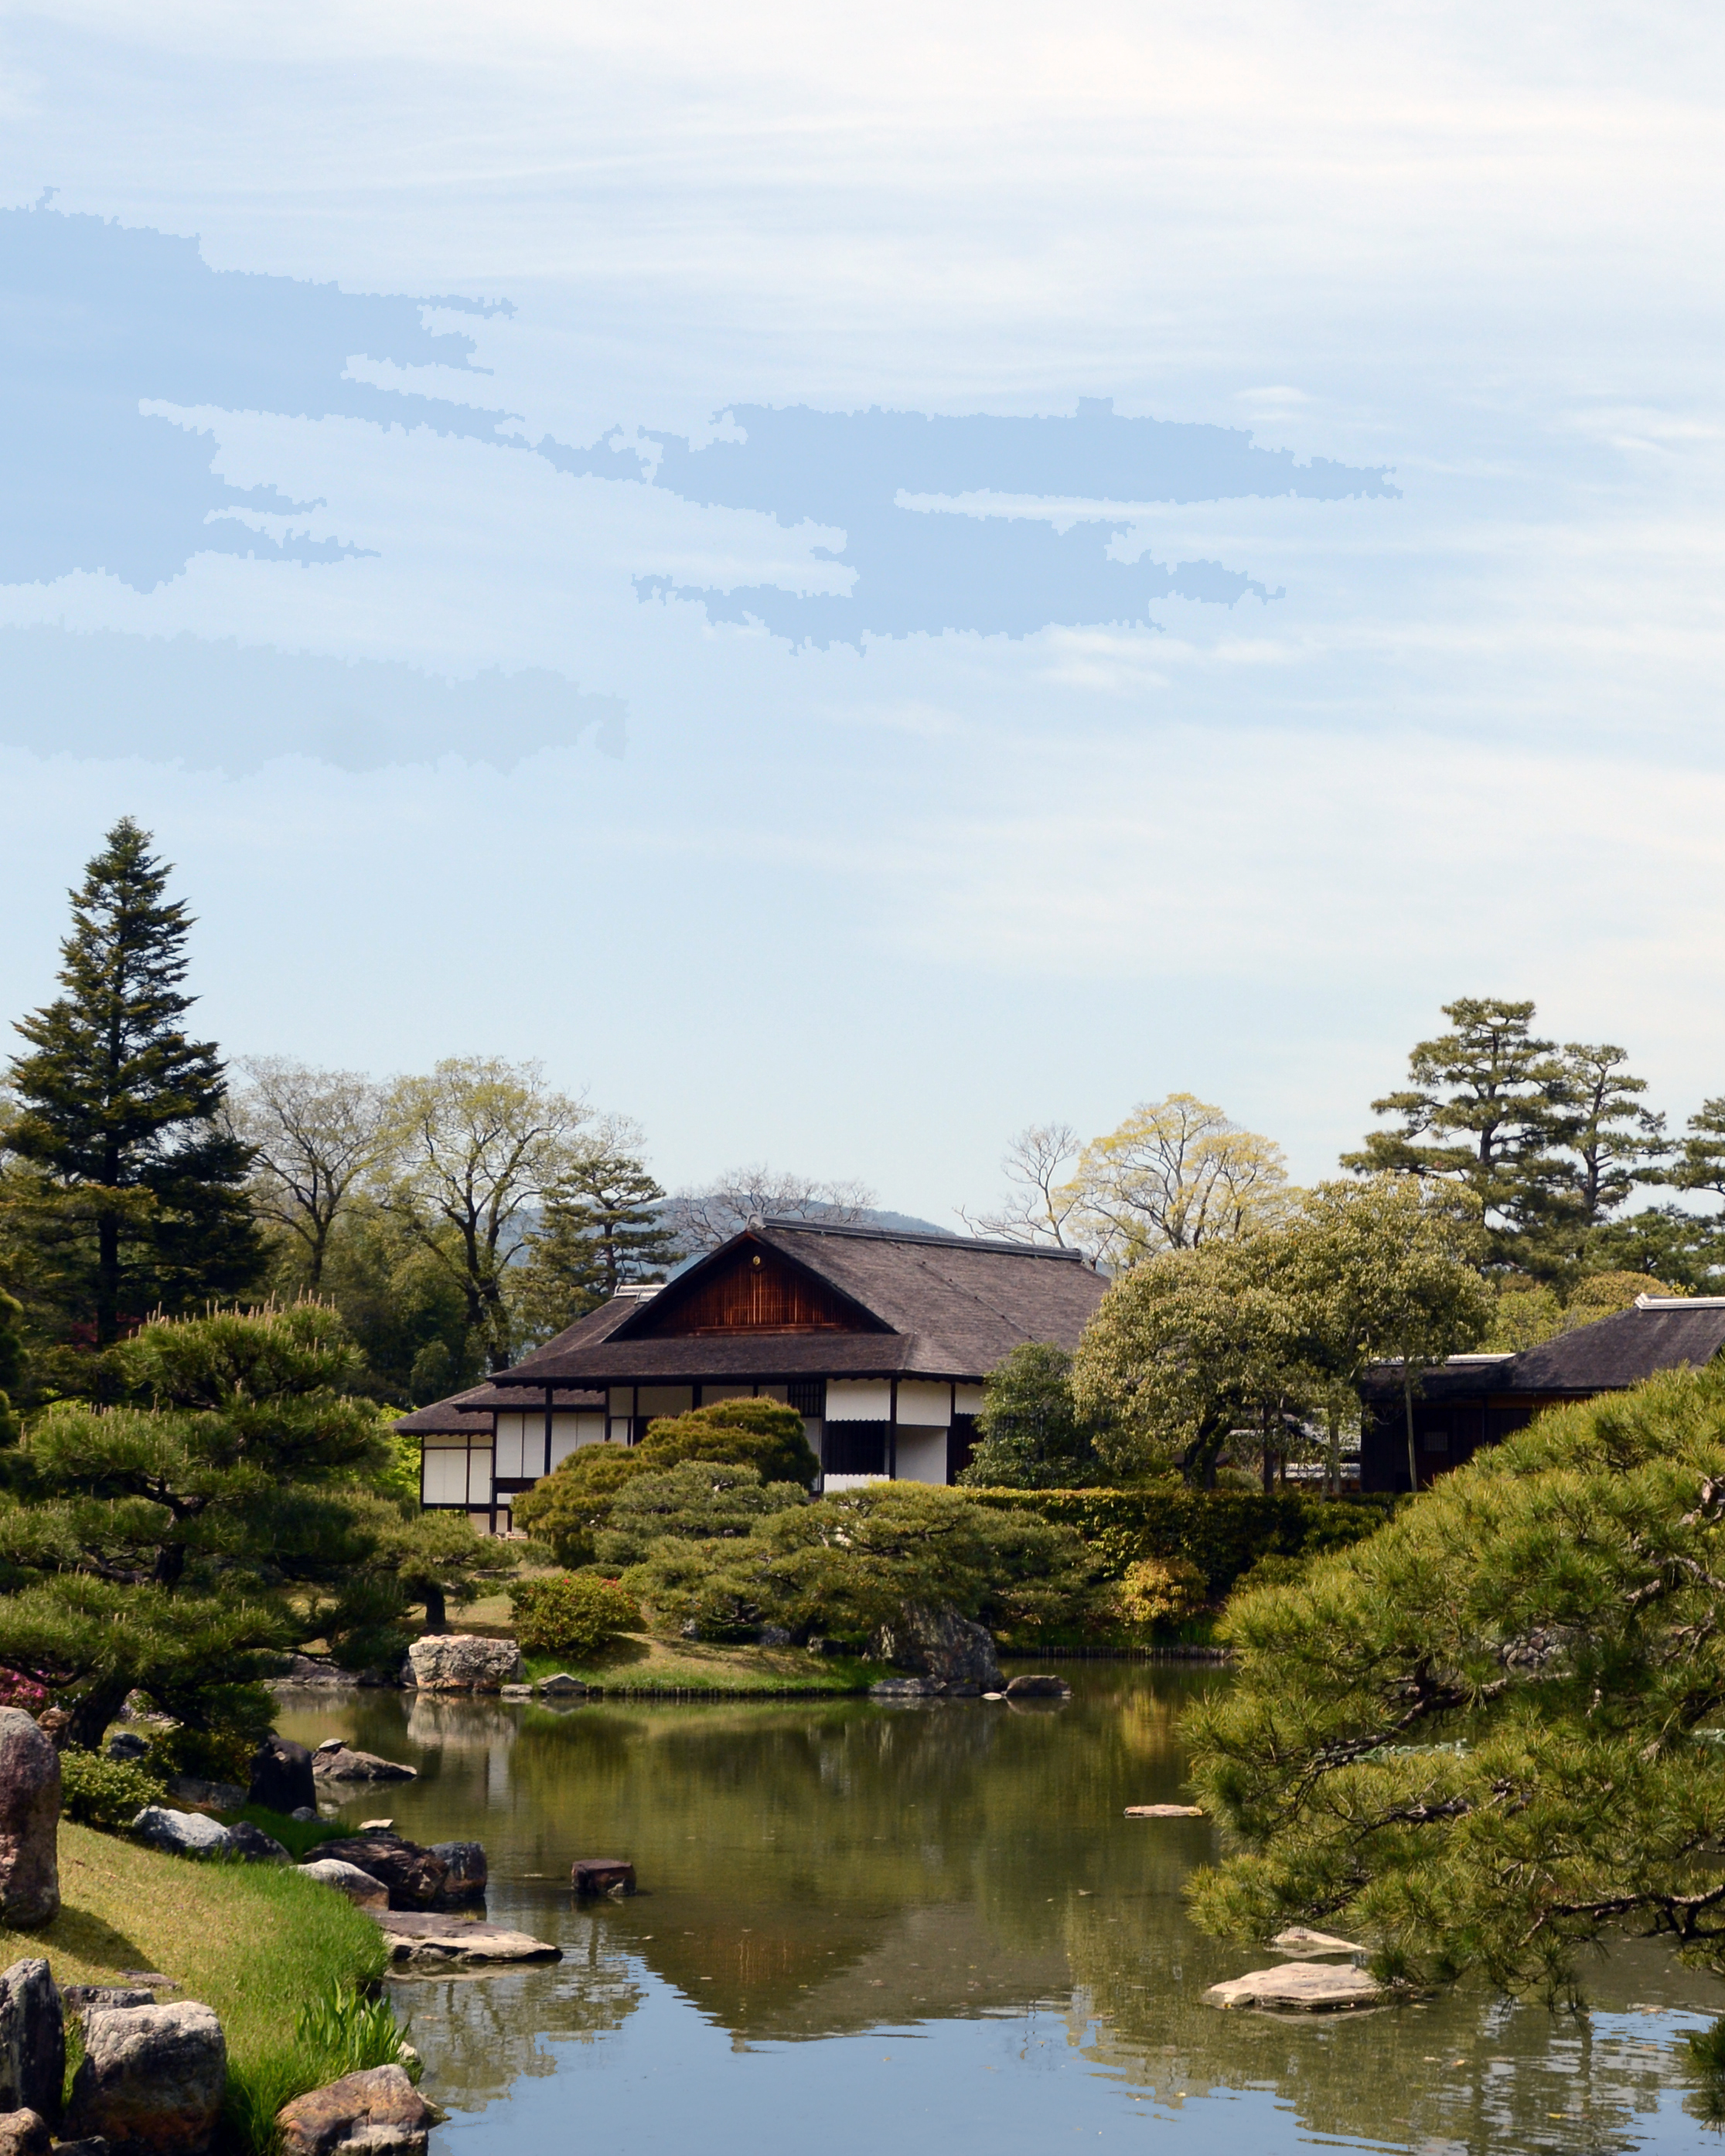 Katsura Villa's Old Shoin, as seen from across the pond.